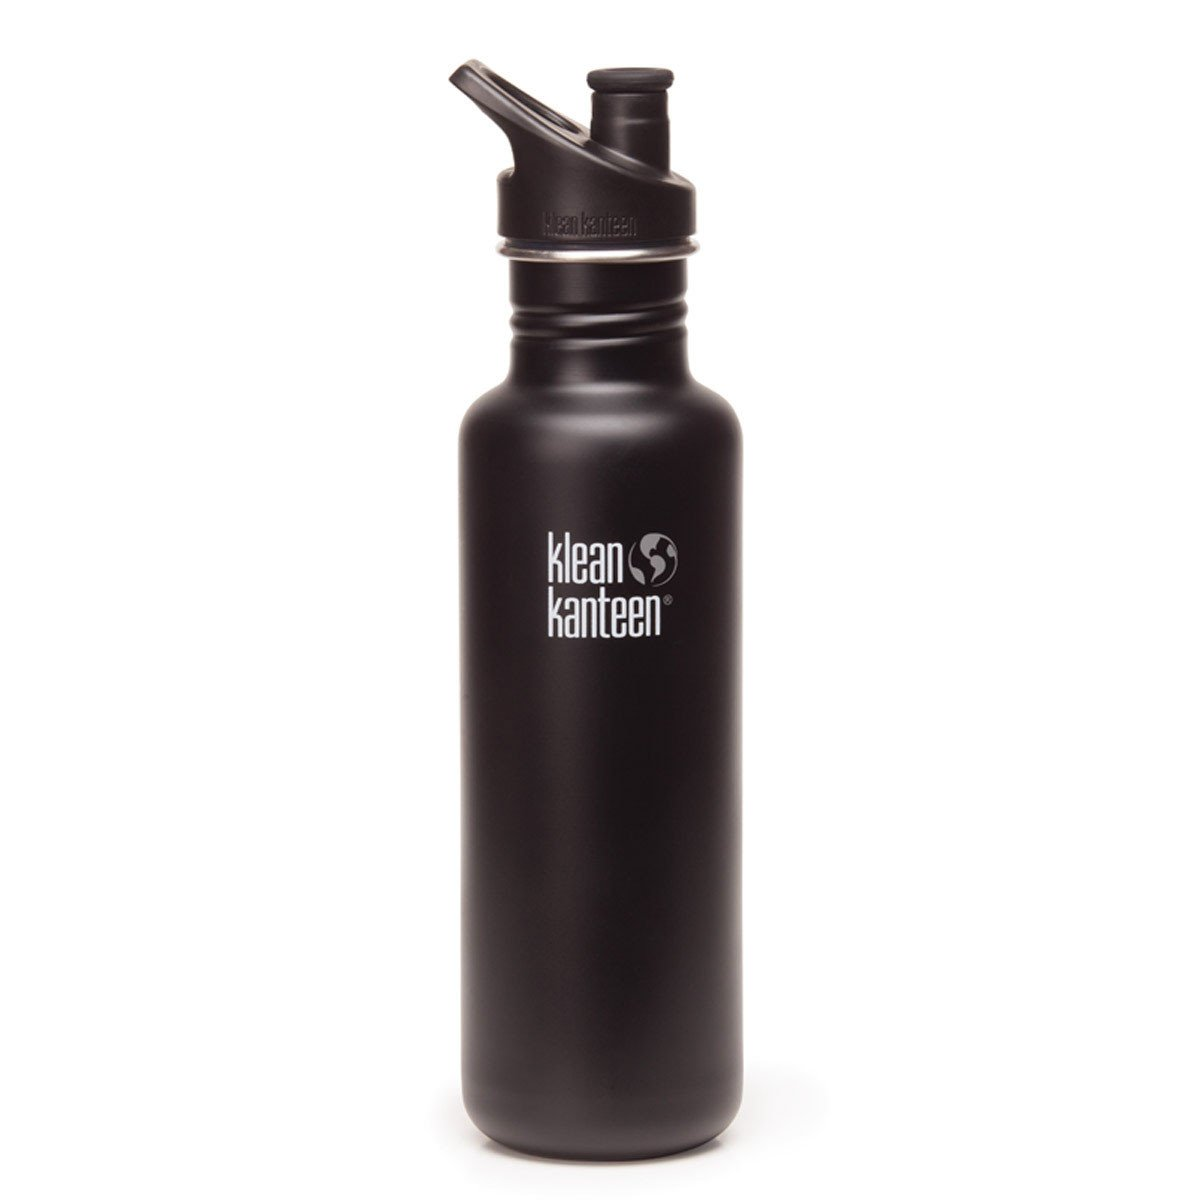 Klean Kanteen Stainless Steel Classic Water Bottle Klean Kanteen Water Bottles 800ml 27oz / Shale Black at Little Earth Nest Eco Shop